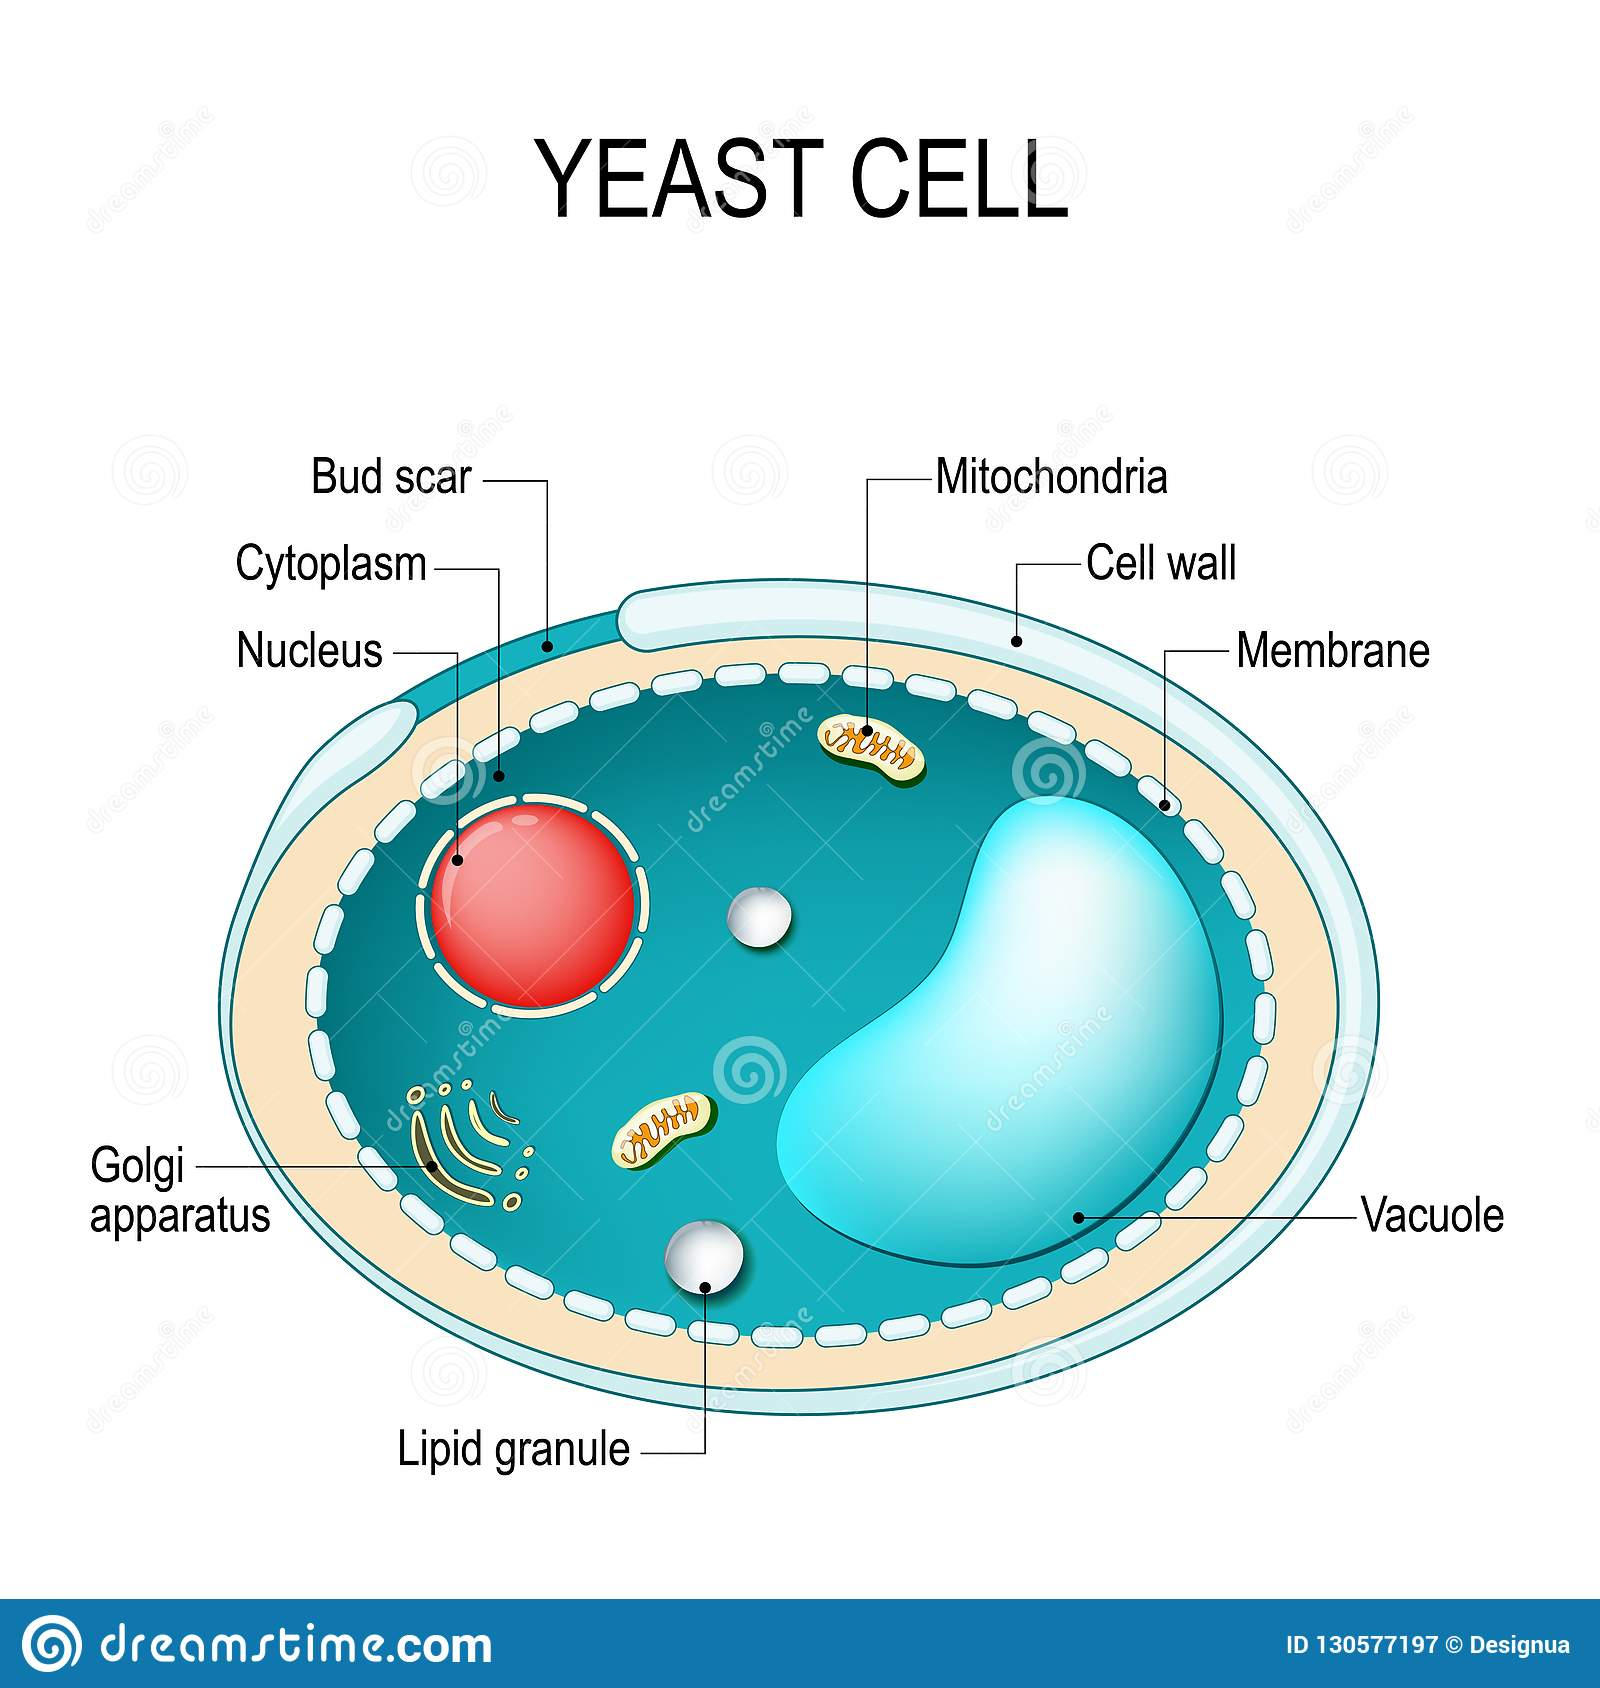 enzymatic fuel cell diagram cross section of a yeast cell. structure of fungal cell ...